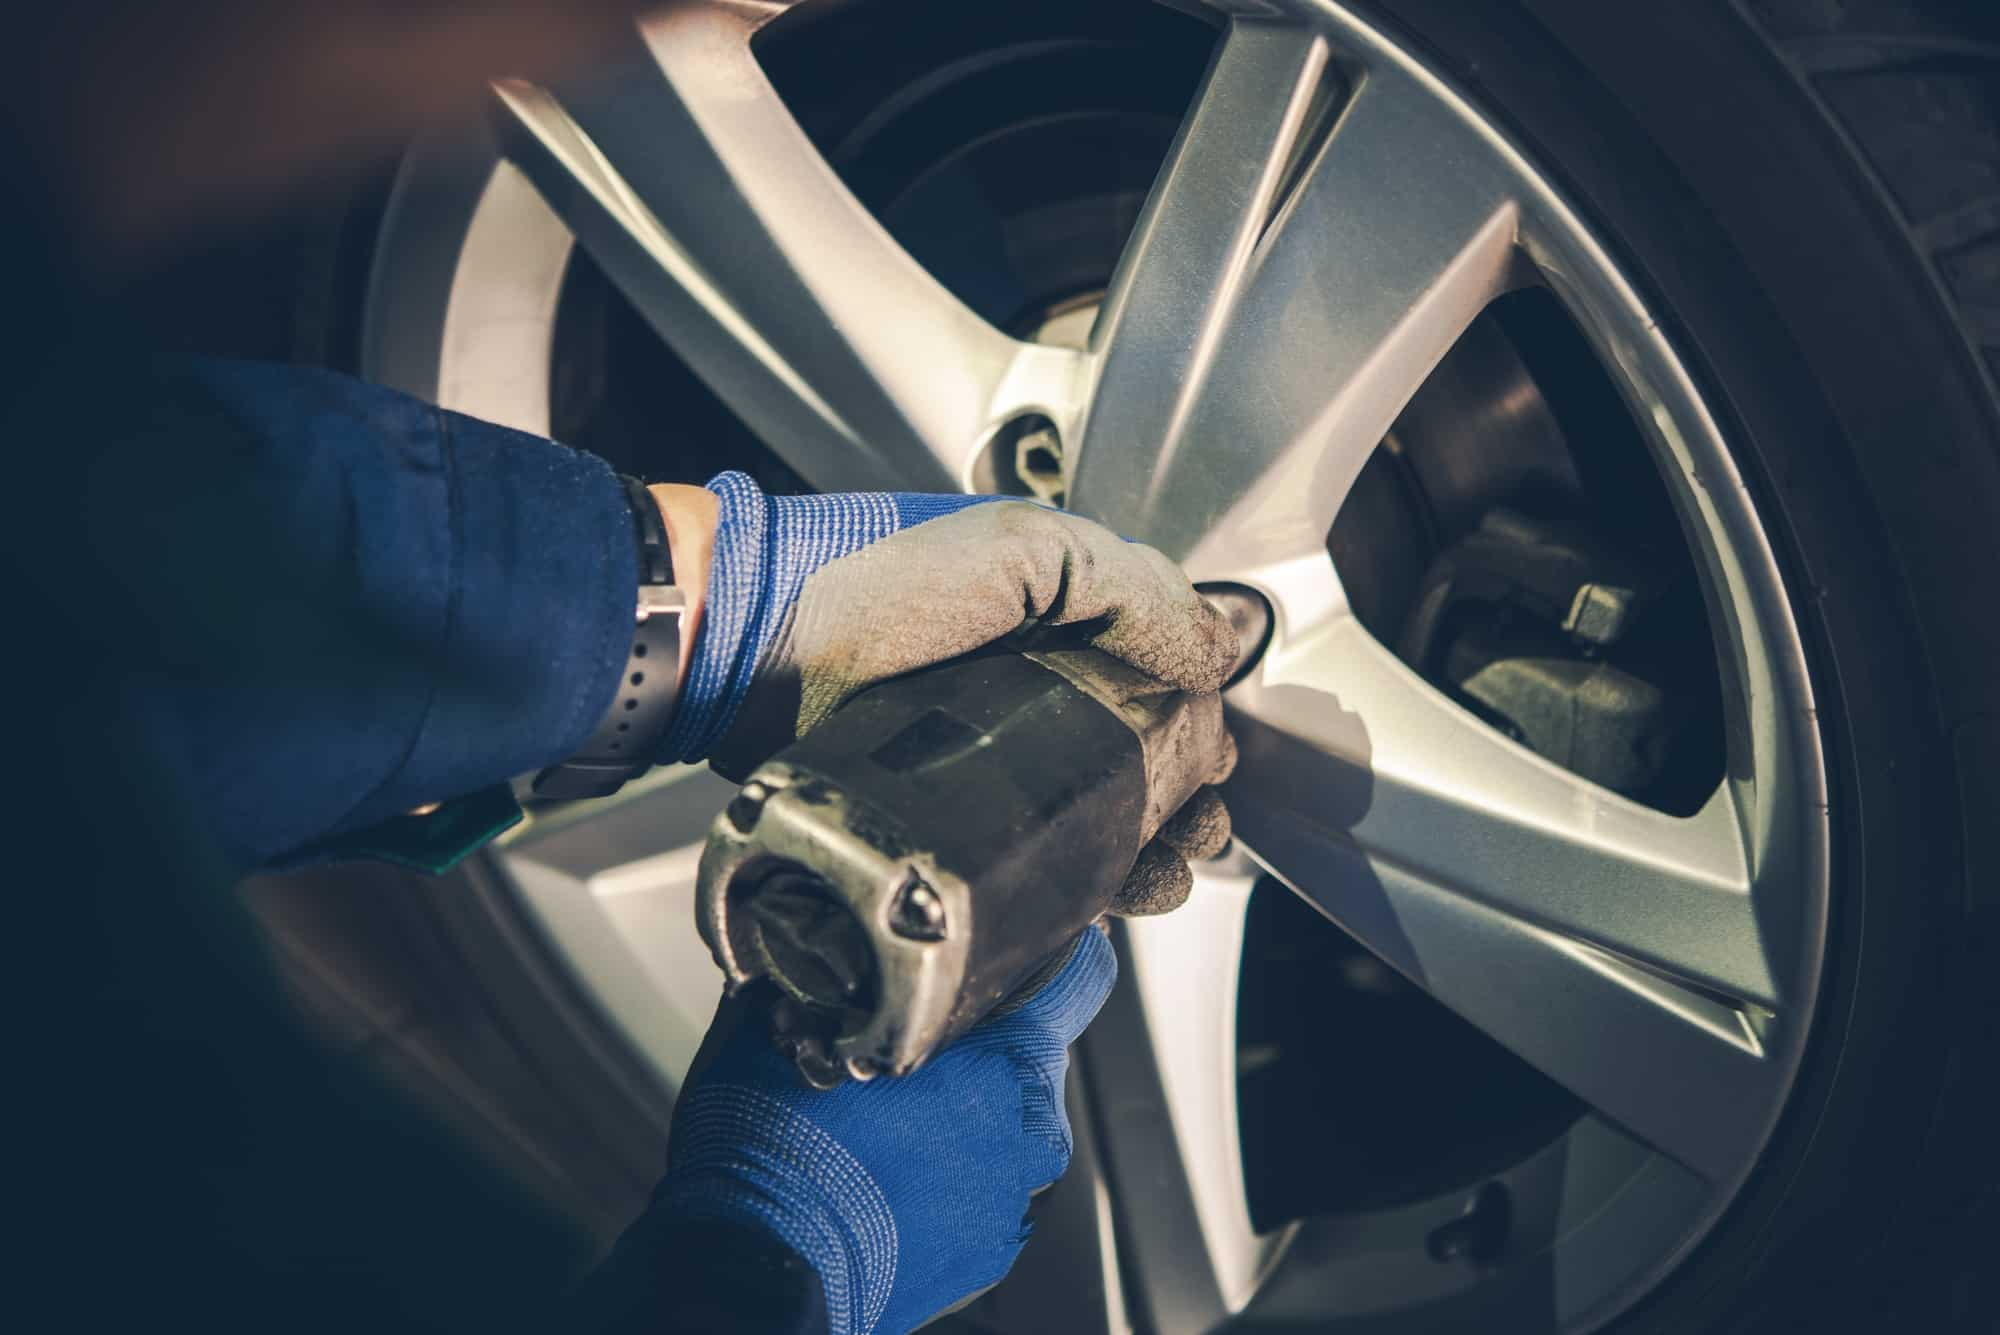 A winter tire being changed